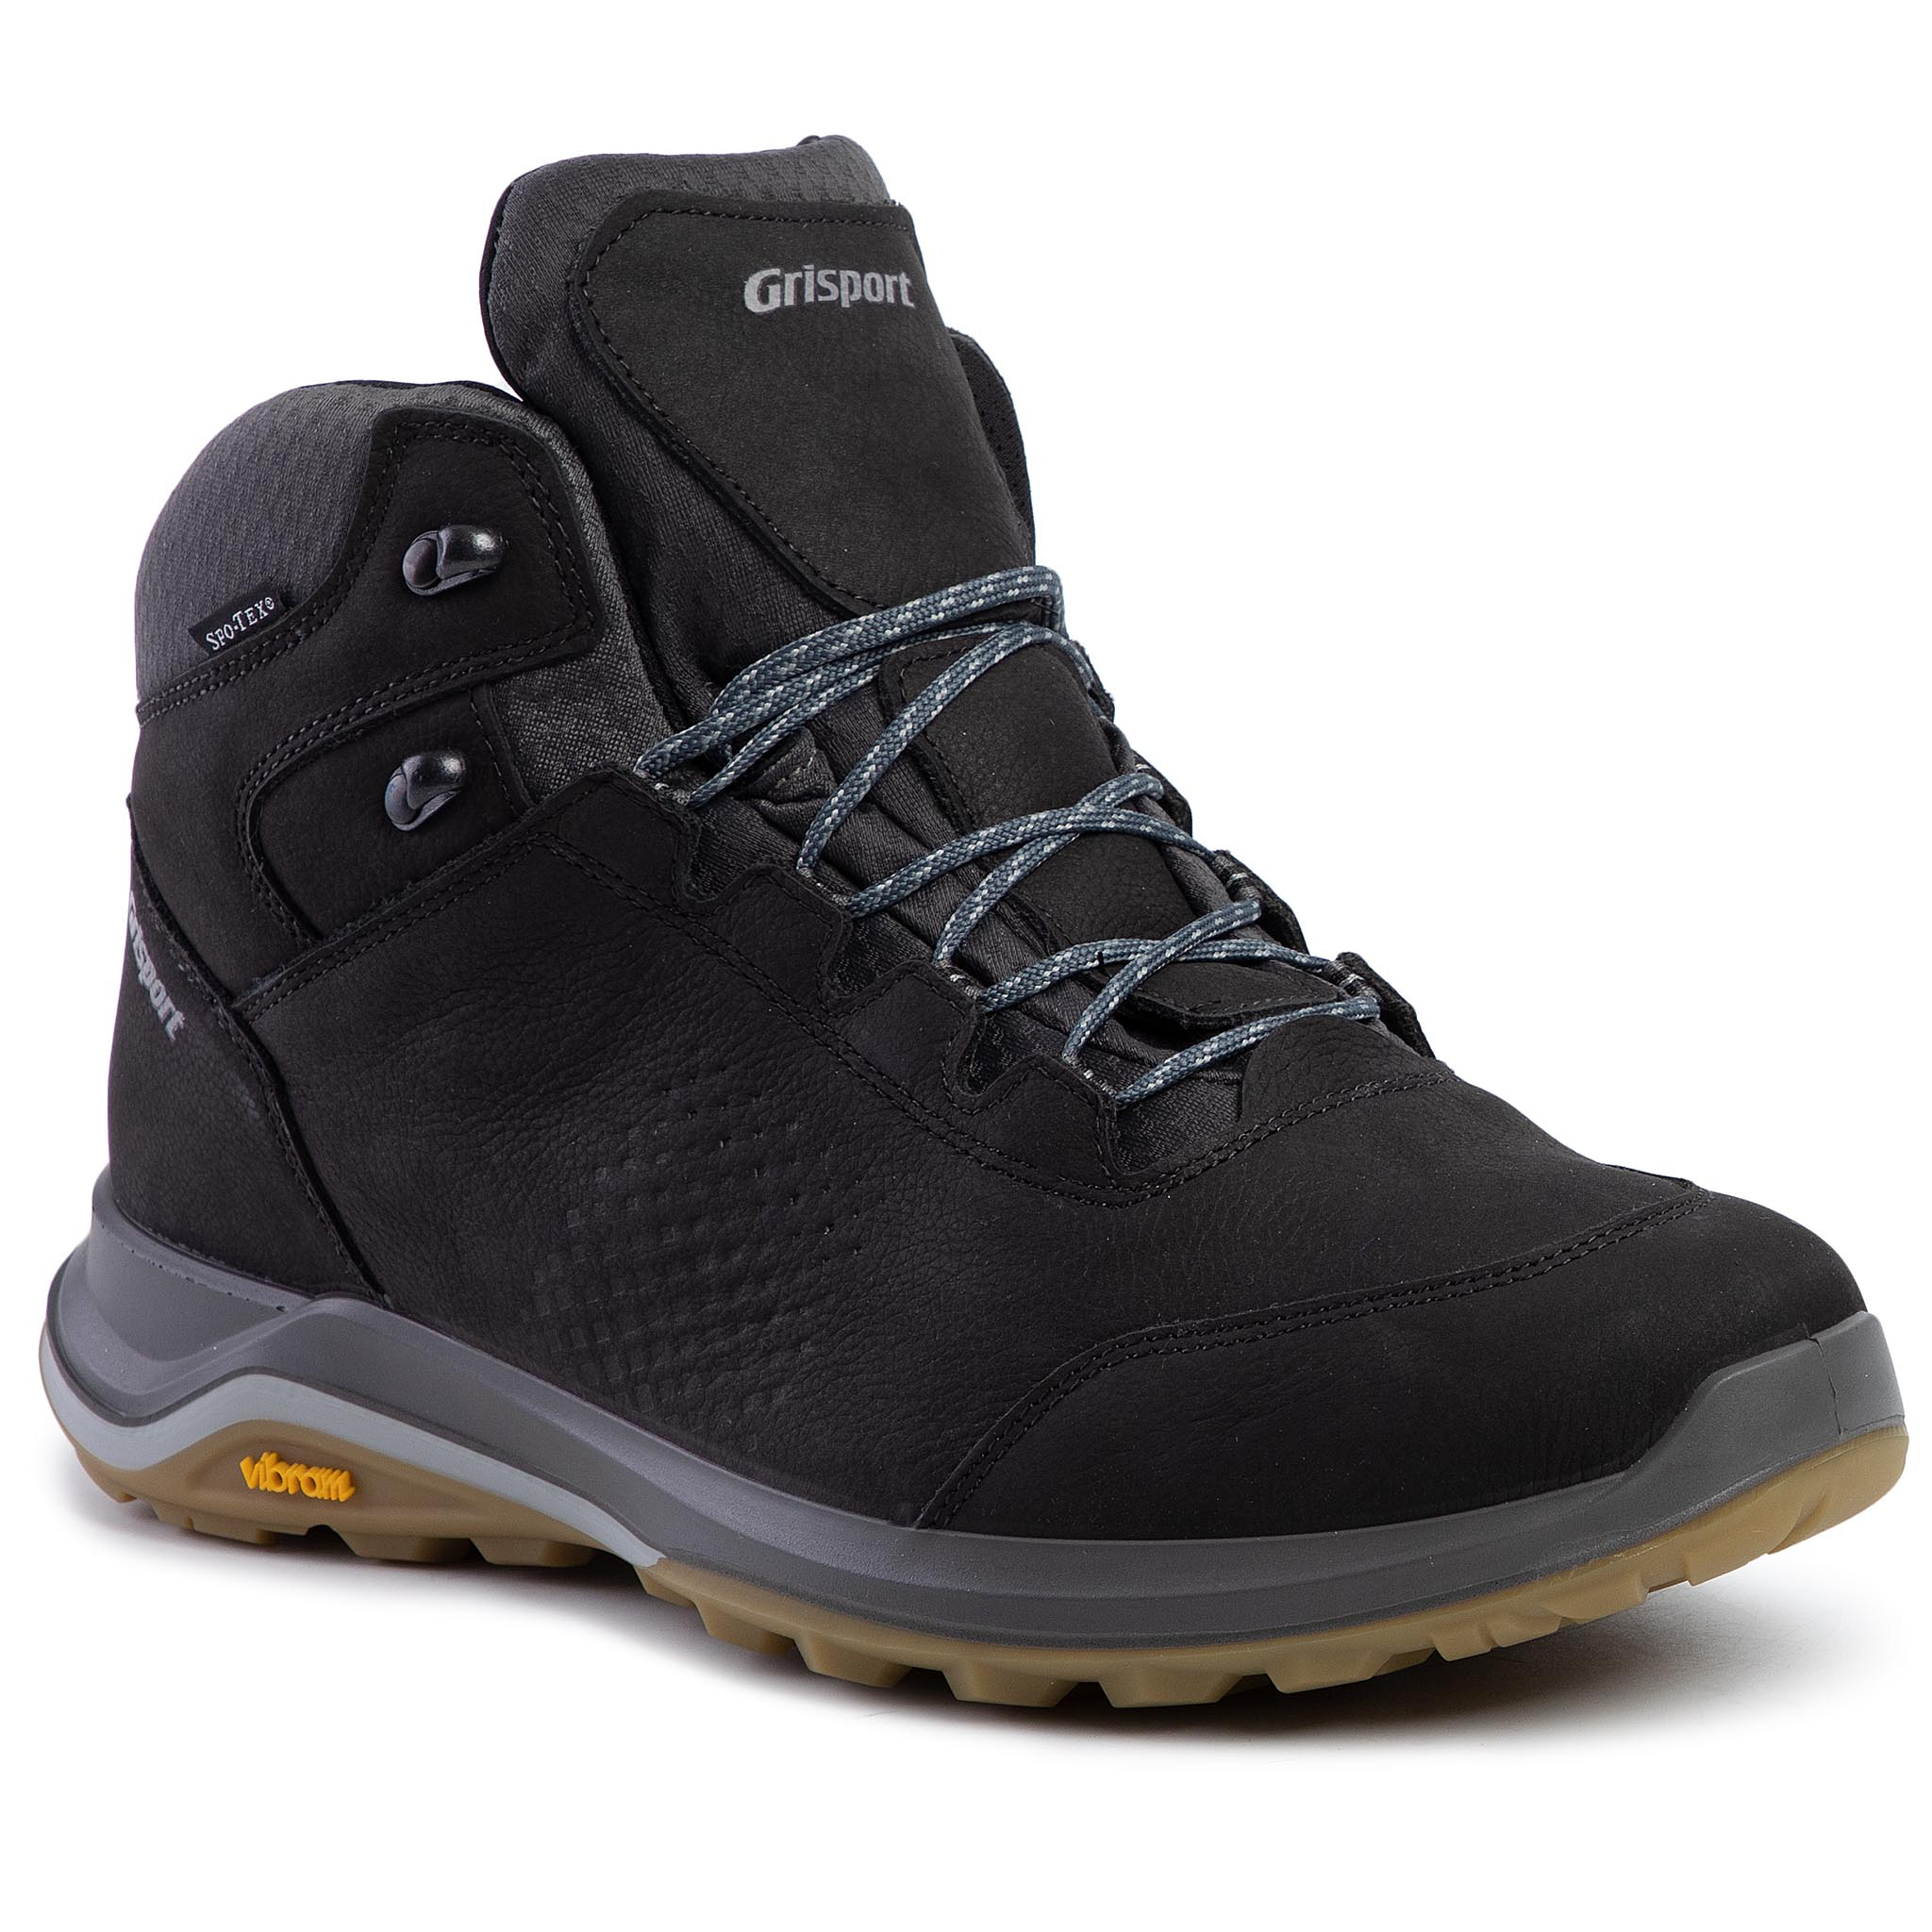 Trekkings Grisport - 14311c4t Nero Cangu imagine epantofi.ro 2021